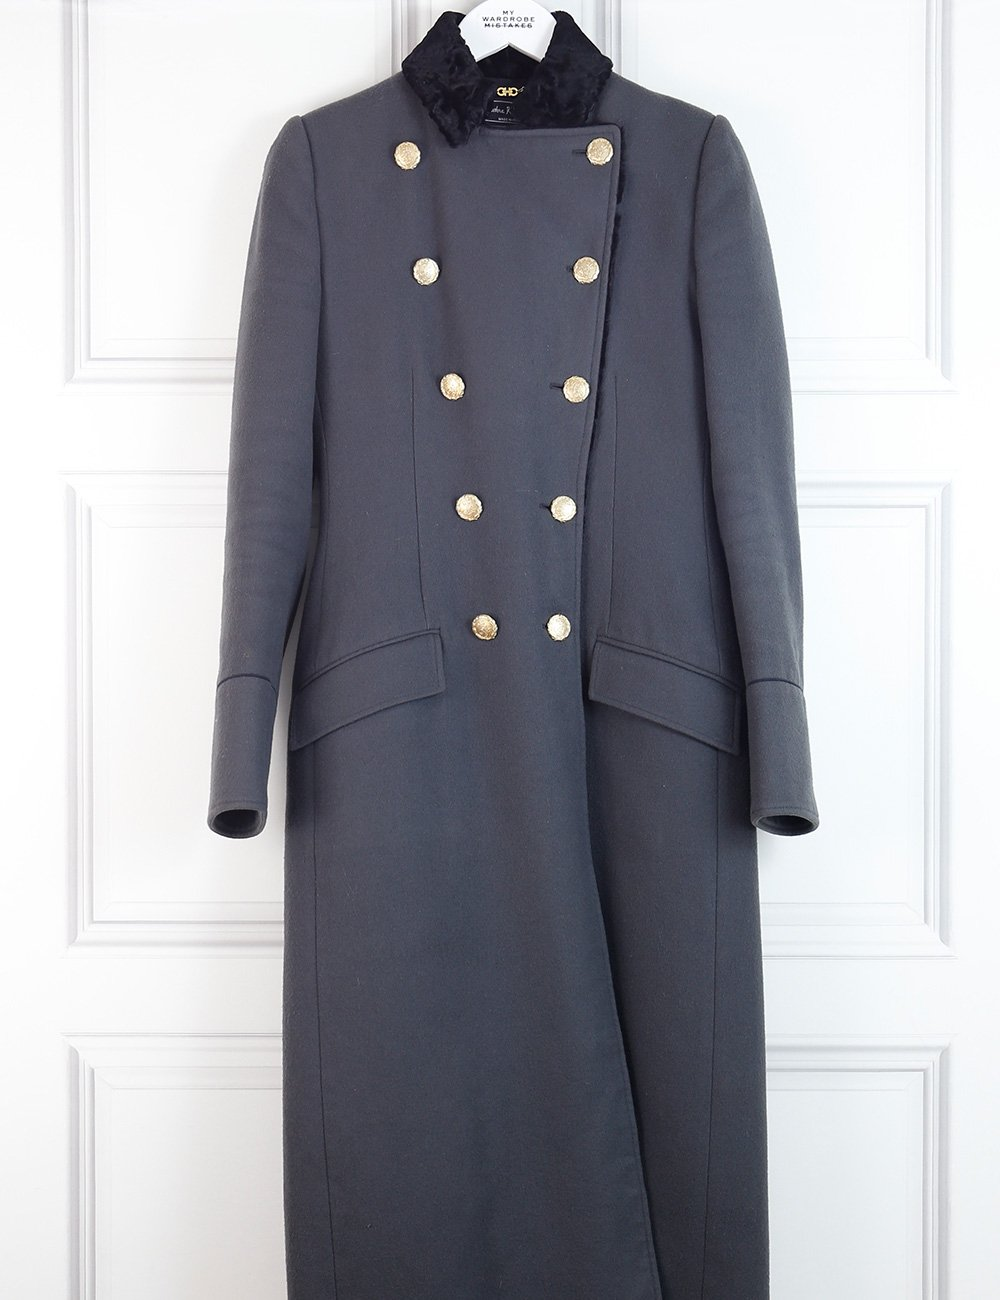 Salvatore Ferragamo grey long coat with fur and golden buttons 8UK- My Wardrobe Mistakes